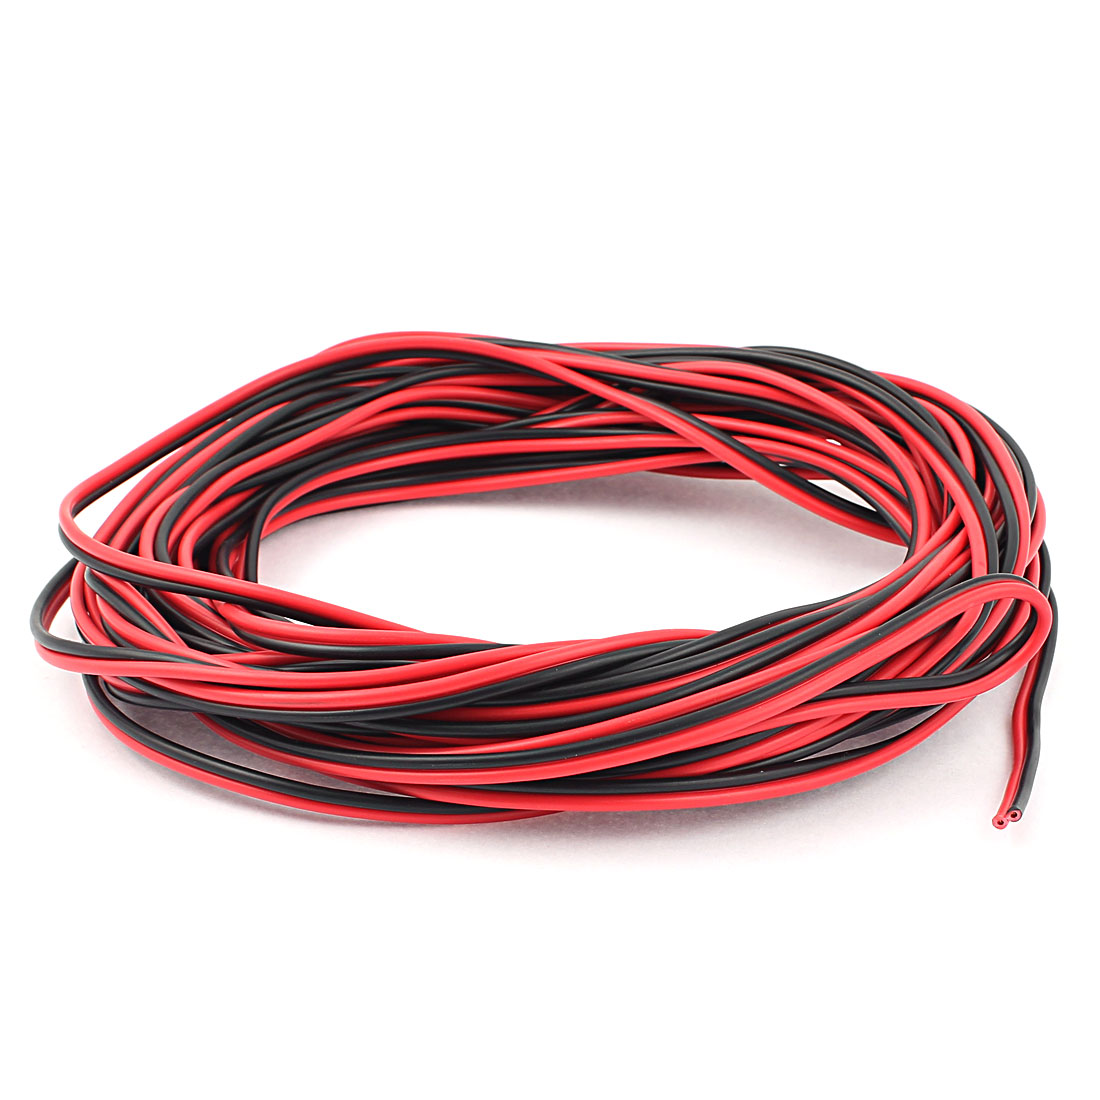 AC 220V 49Ft Electronic Twisted Hookup Wire Red Black